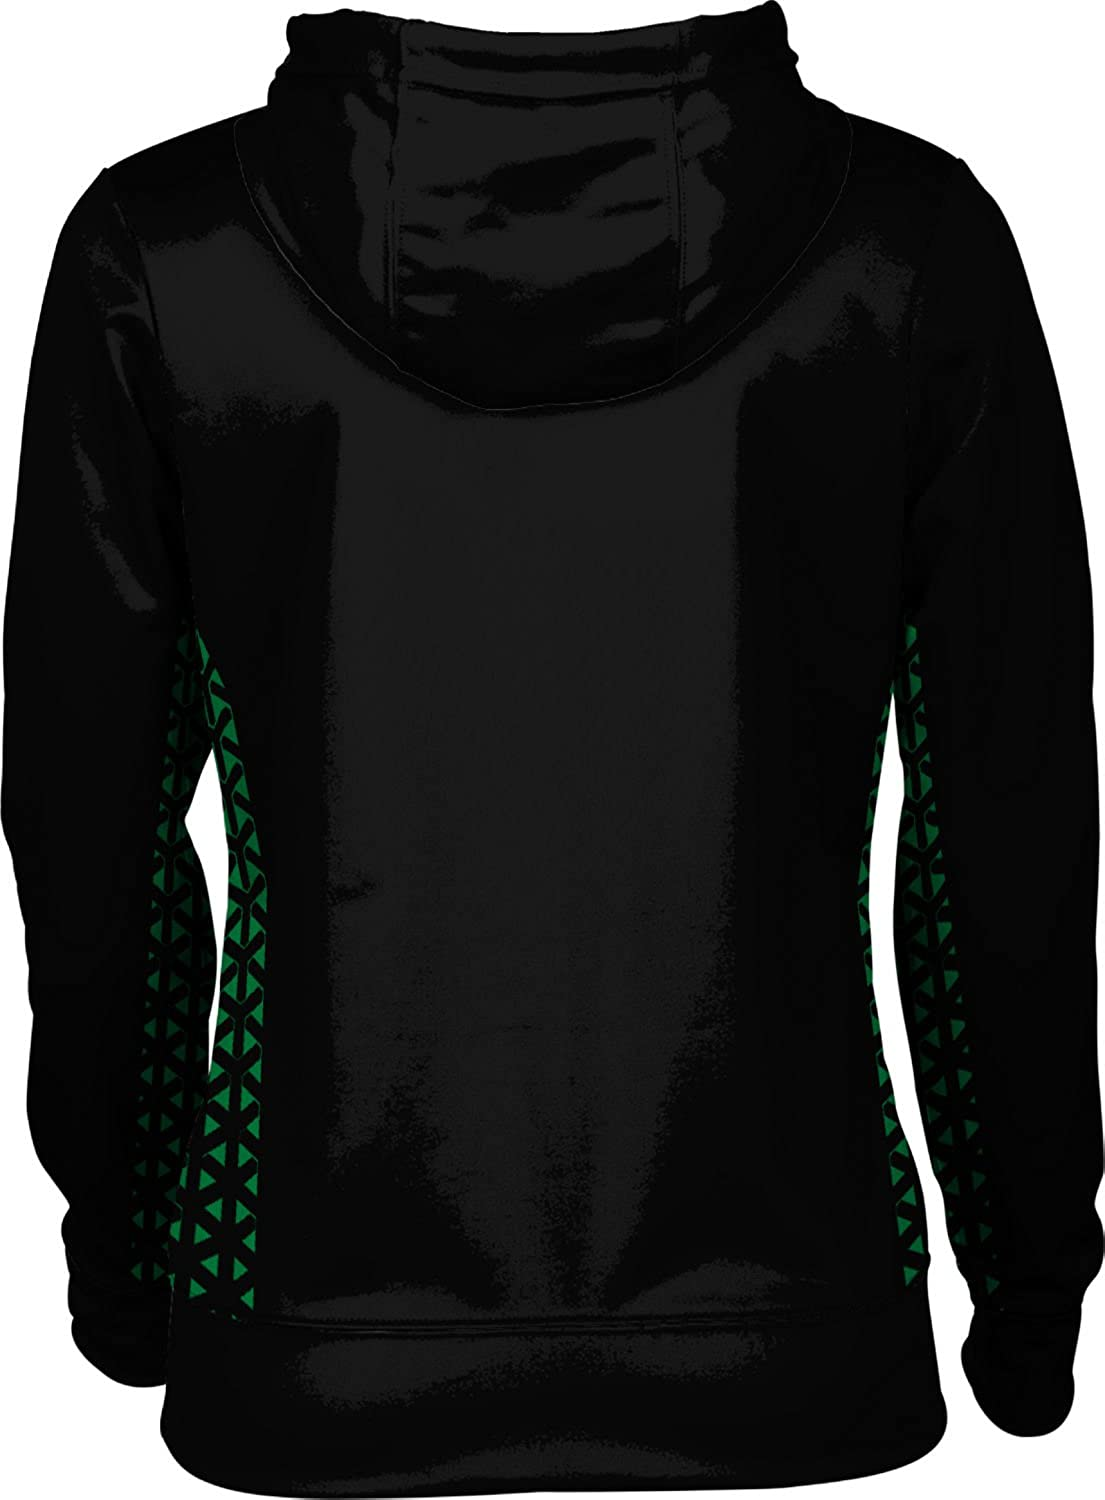 University of North Texas Girls Pullover Hoodie Geo School Spirit Sweatshirt